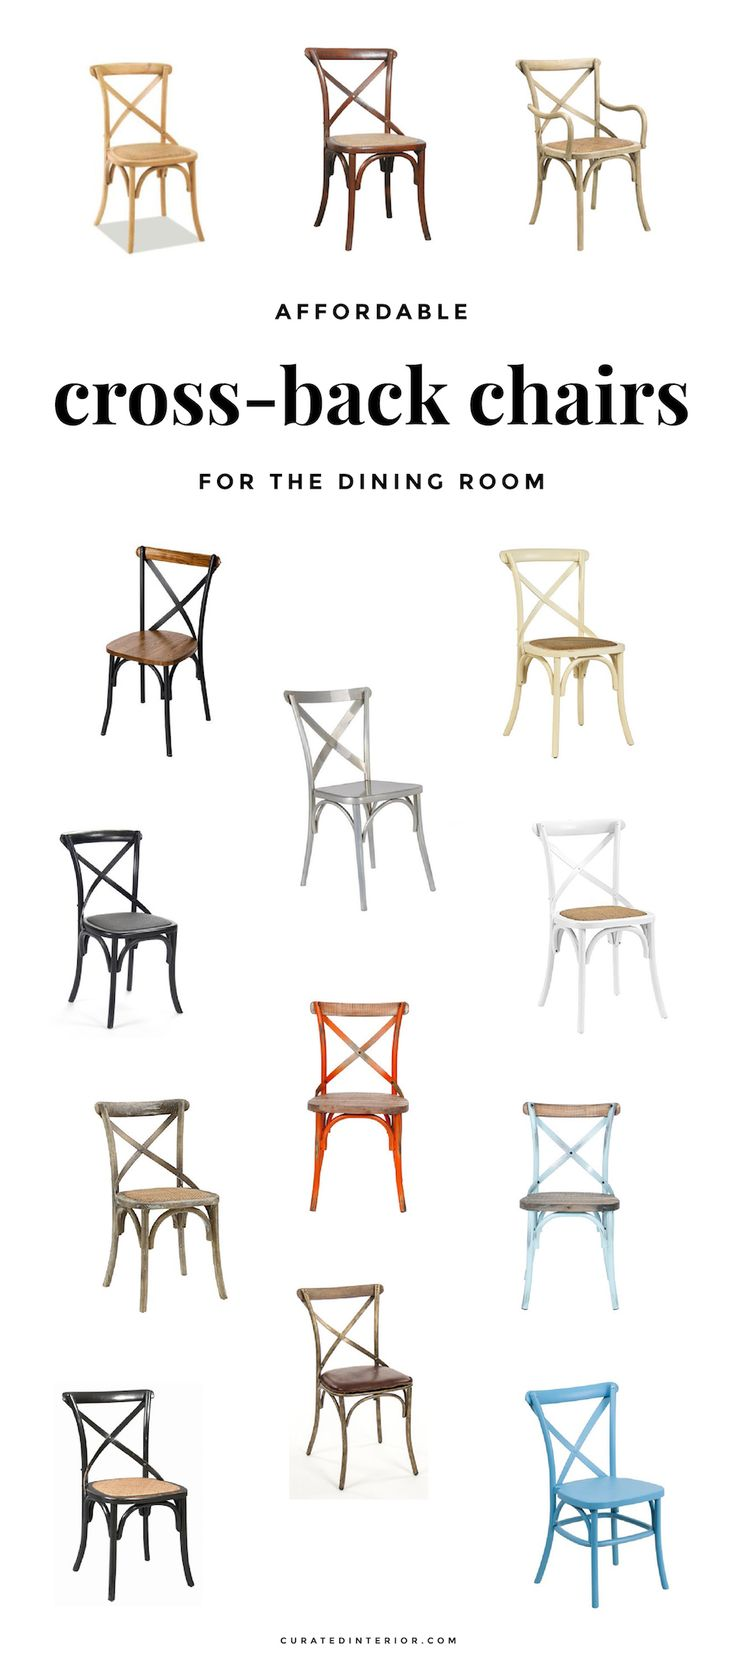 Louis cane back dining chair set of 2 ballard designs - 14 Affordable Cross Back Dining Chairs